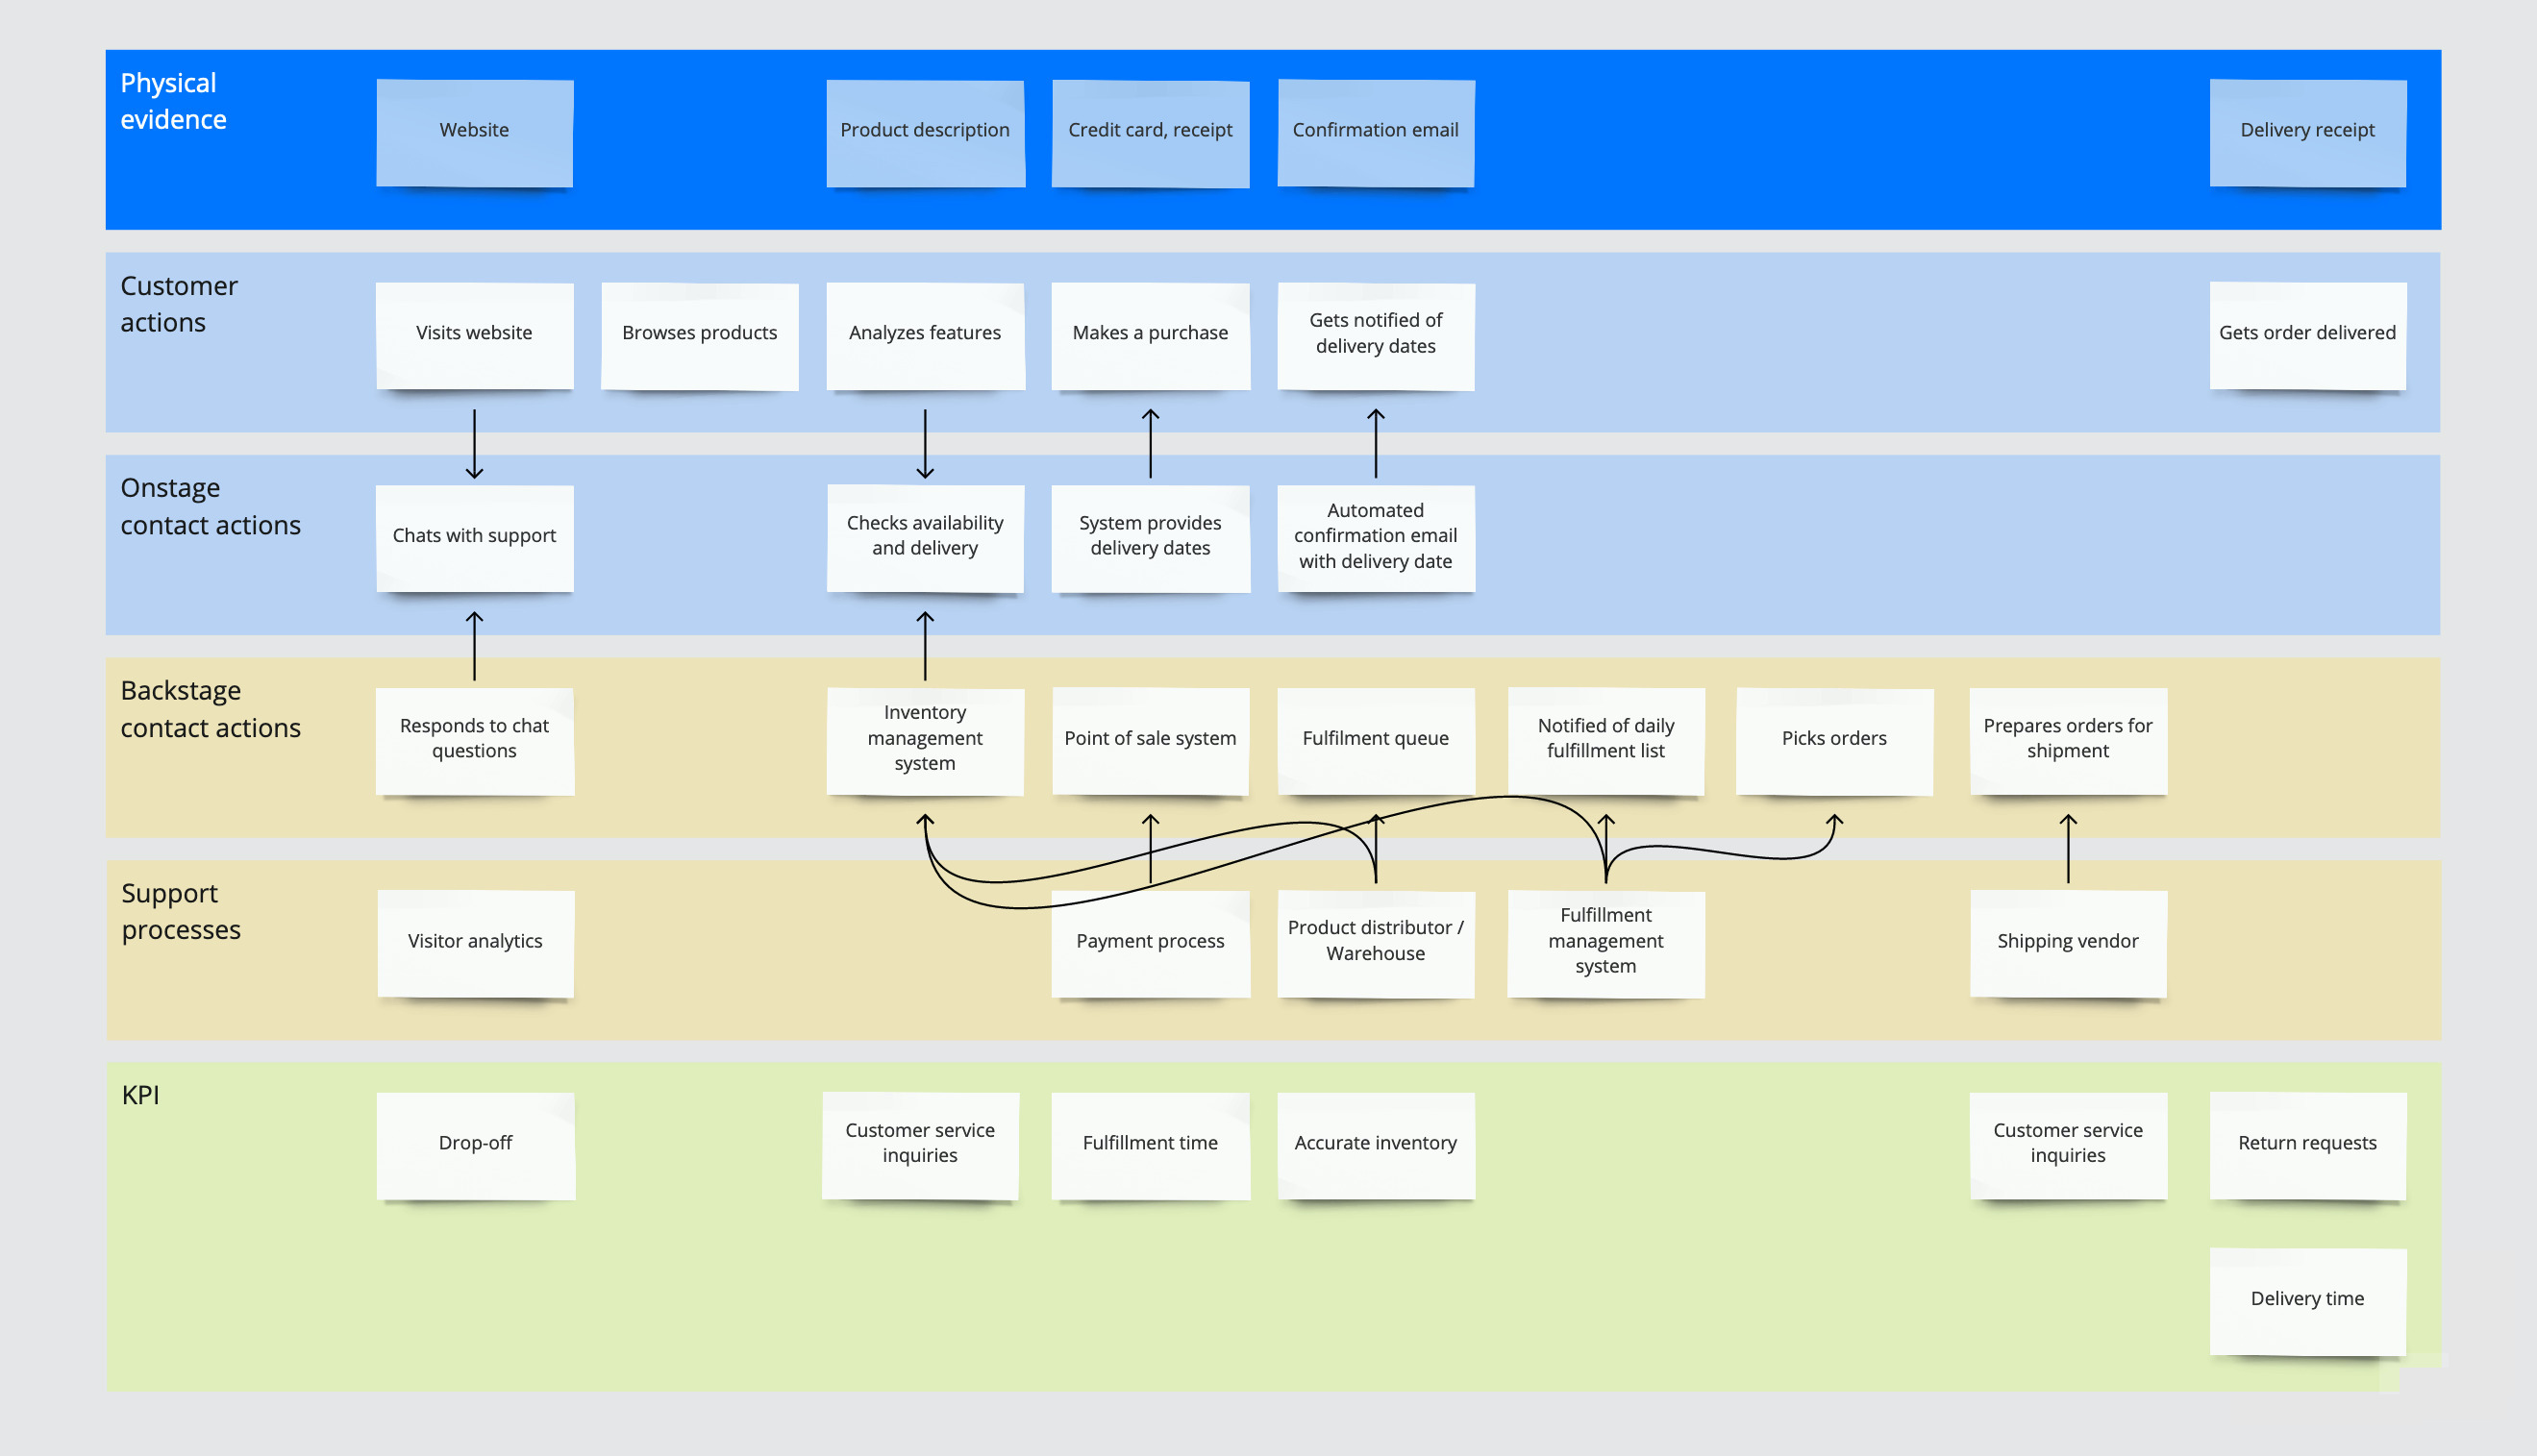 A service blueprint showing customer interactions, touchpoints, and supporting services